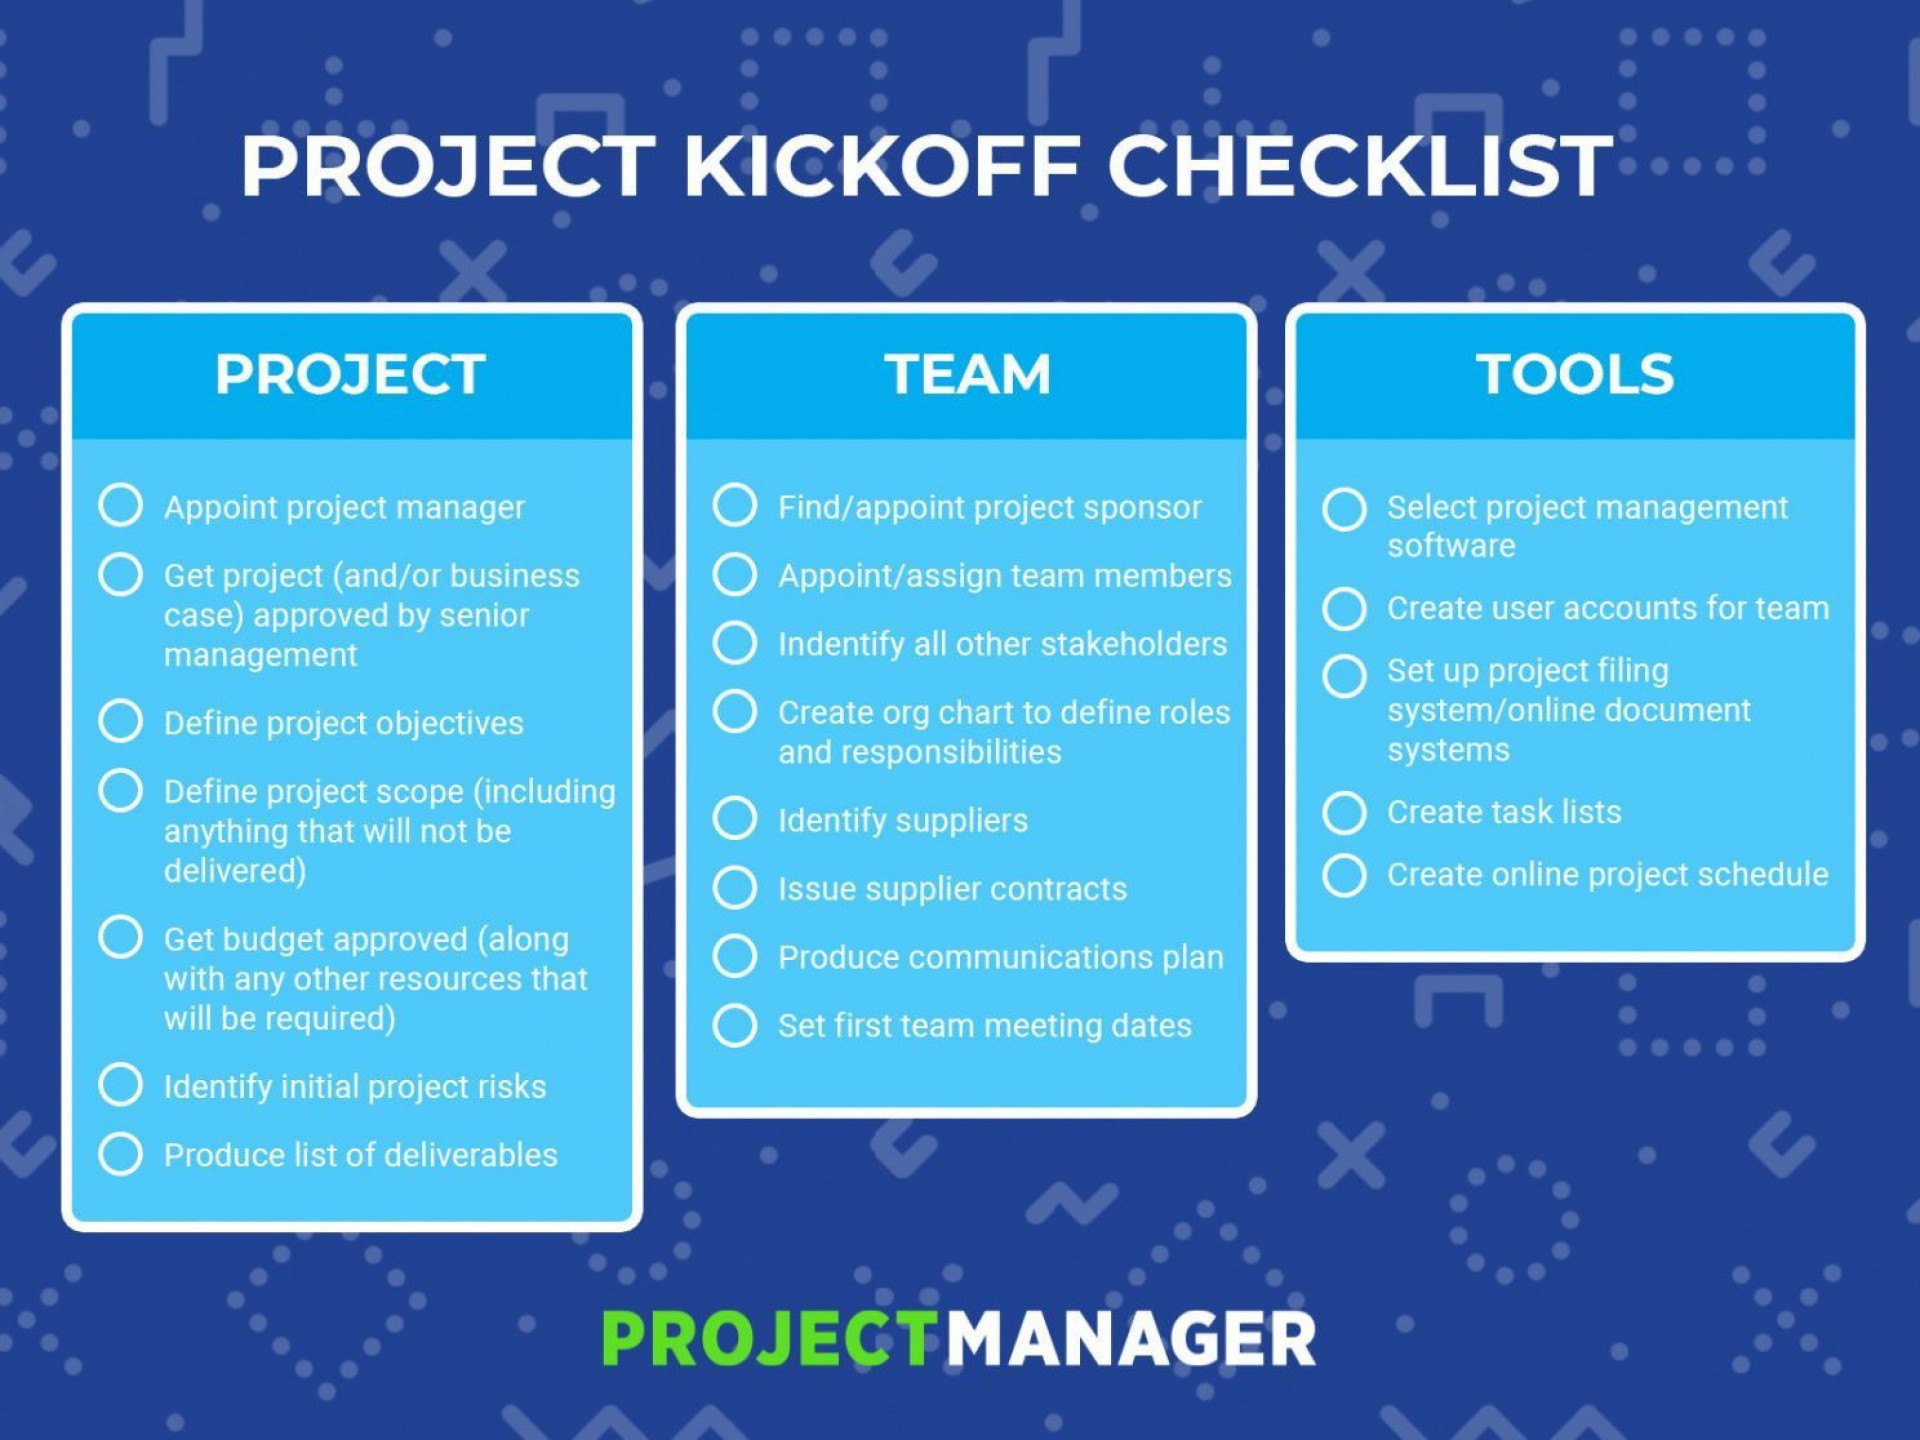 004 Phenomenal Project Management Kickoff Meeting Template Ppt High Def 1920